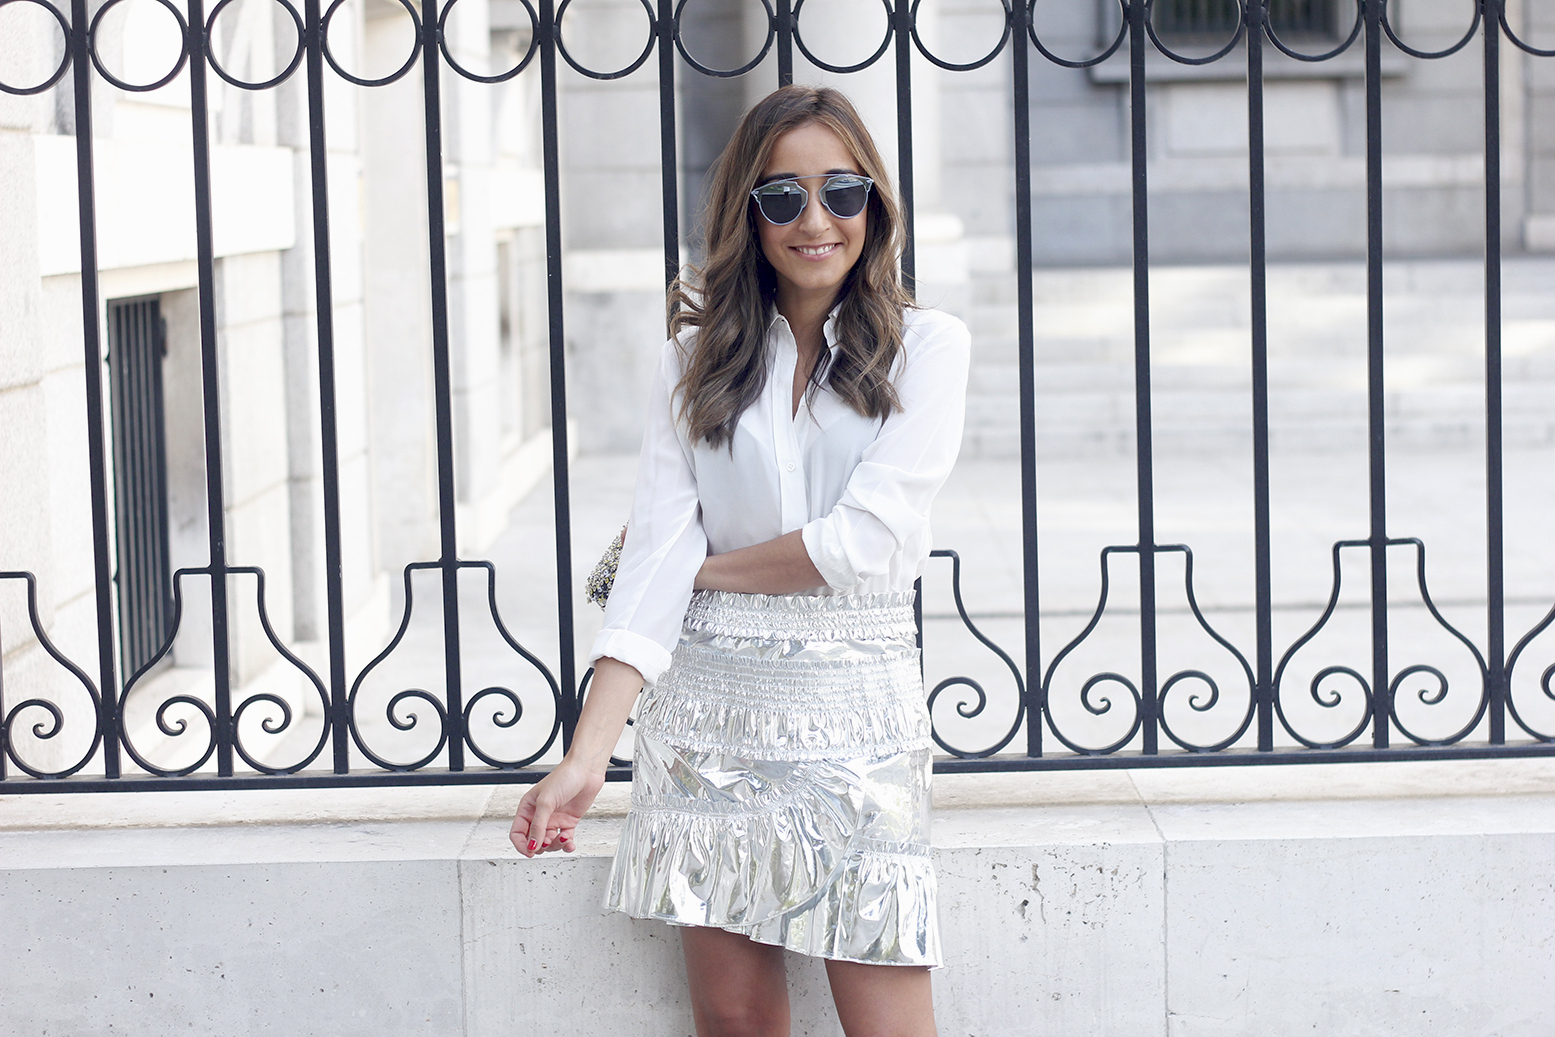 Isabel Marant Metallic Skirt white shirt nude sandals dior so real sunnies outfit style fashion18